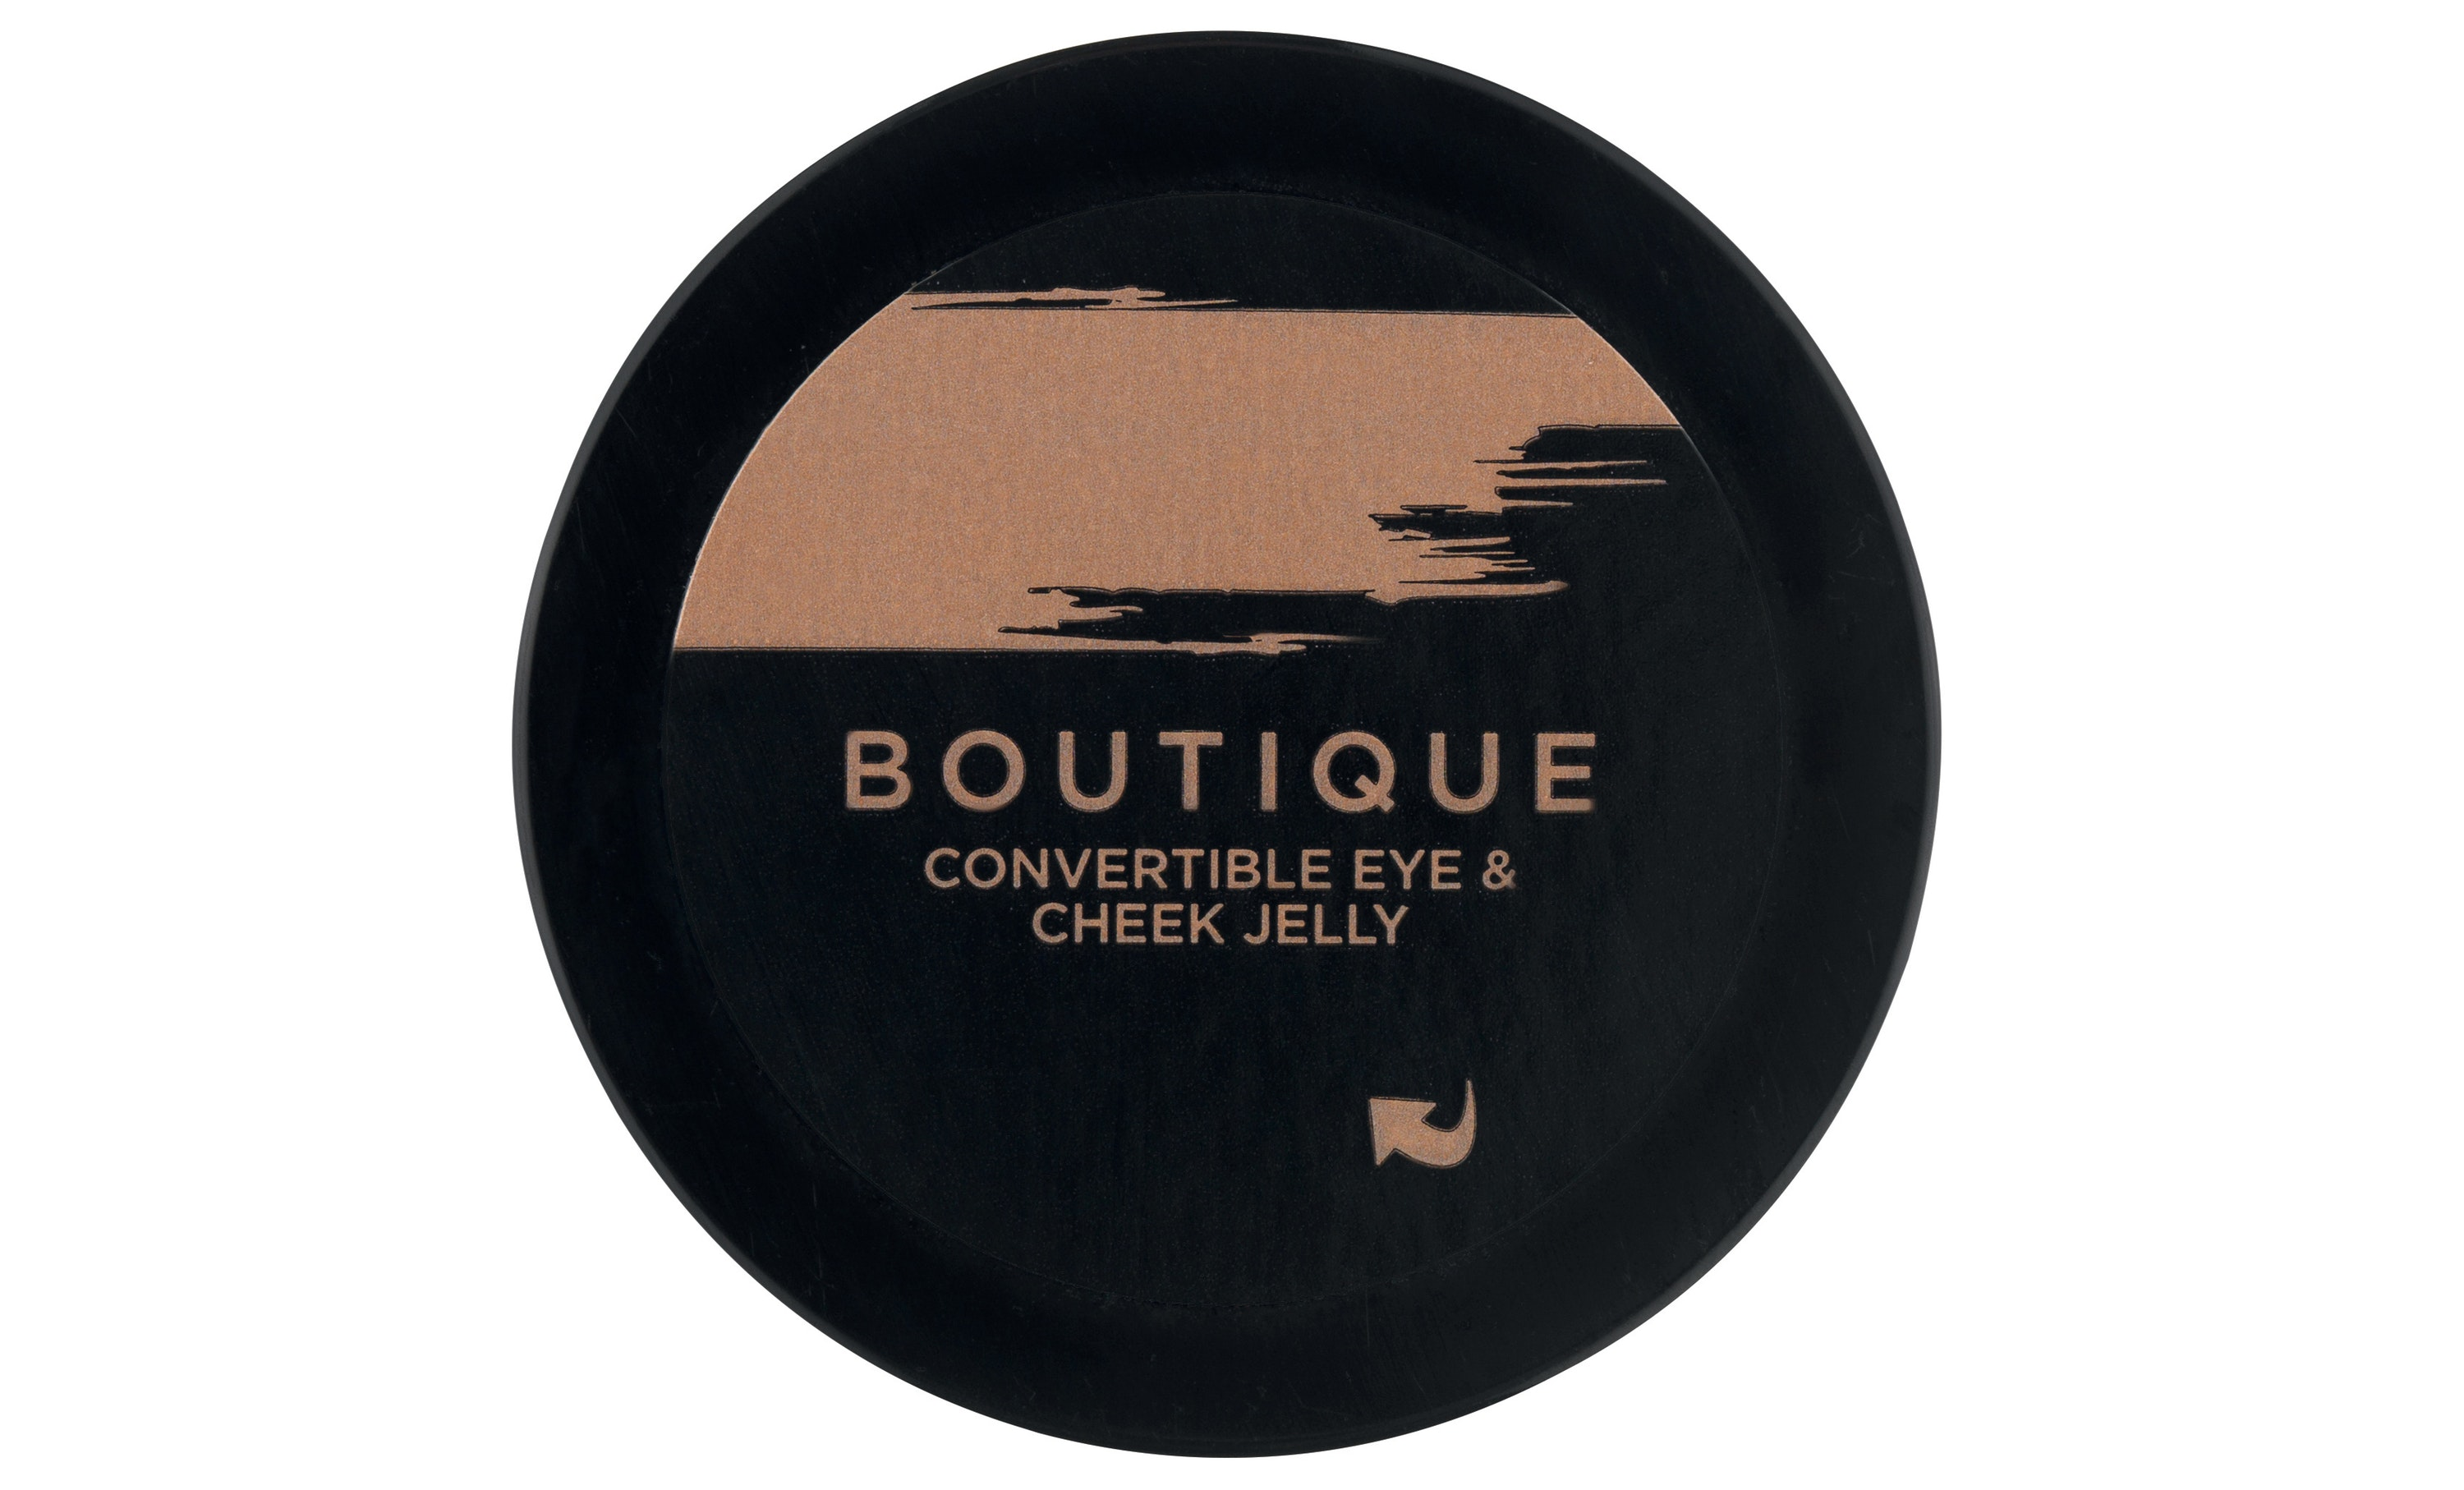 Boutique Convertible Eye and Cheek Jelly Pearl